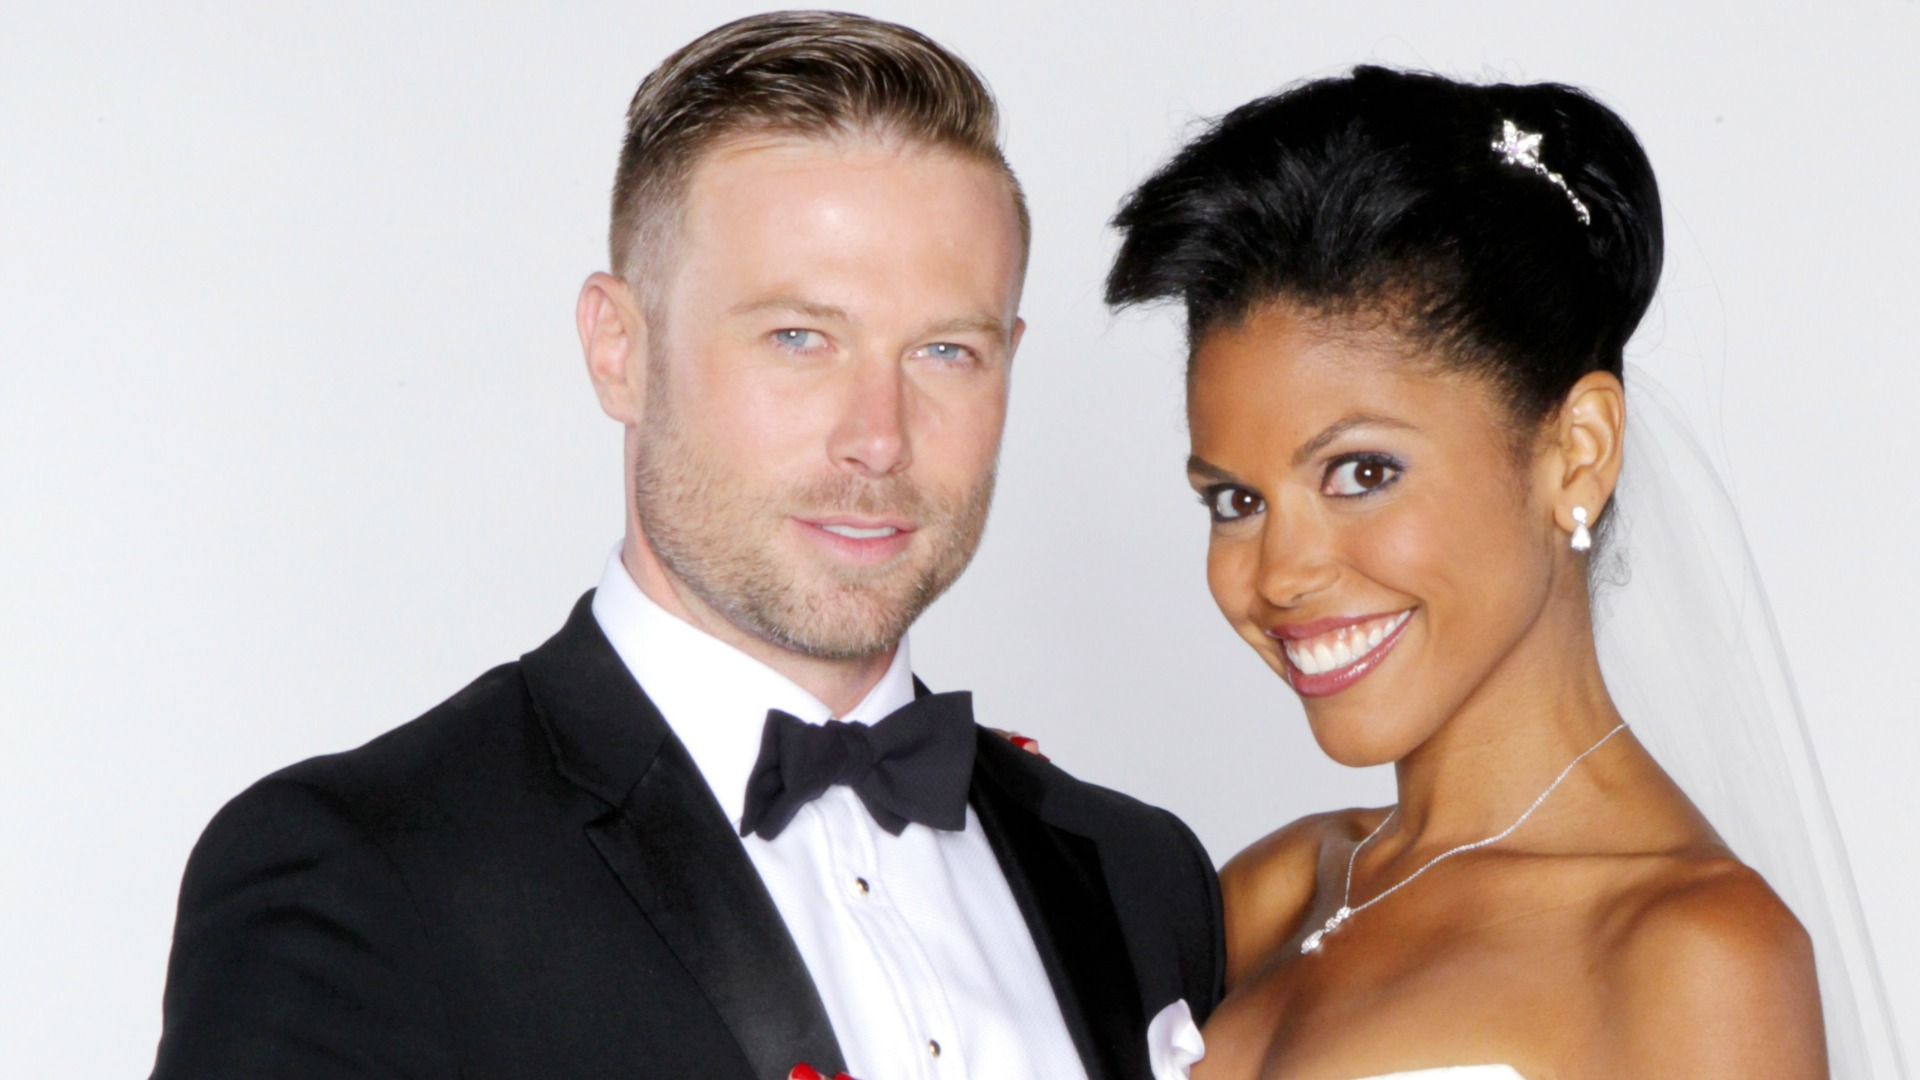 Rick Forrester and Maya Avant solidified their union at the Forrester Mansion in 2016.